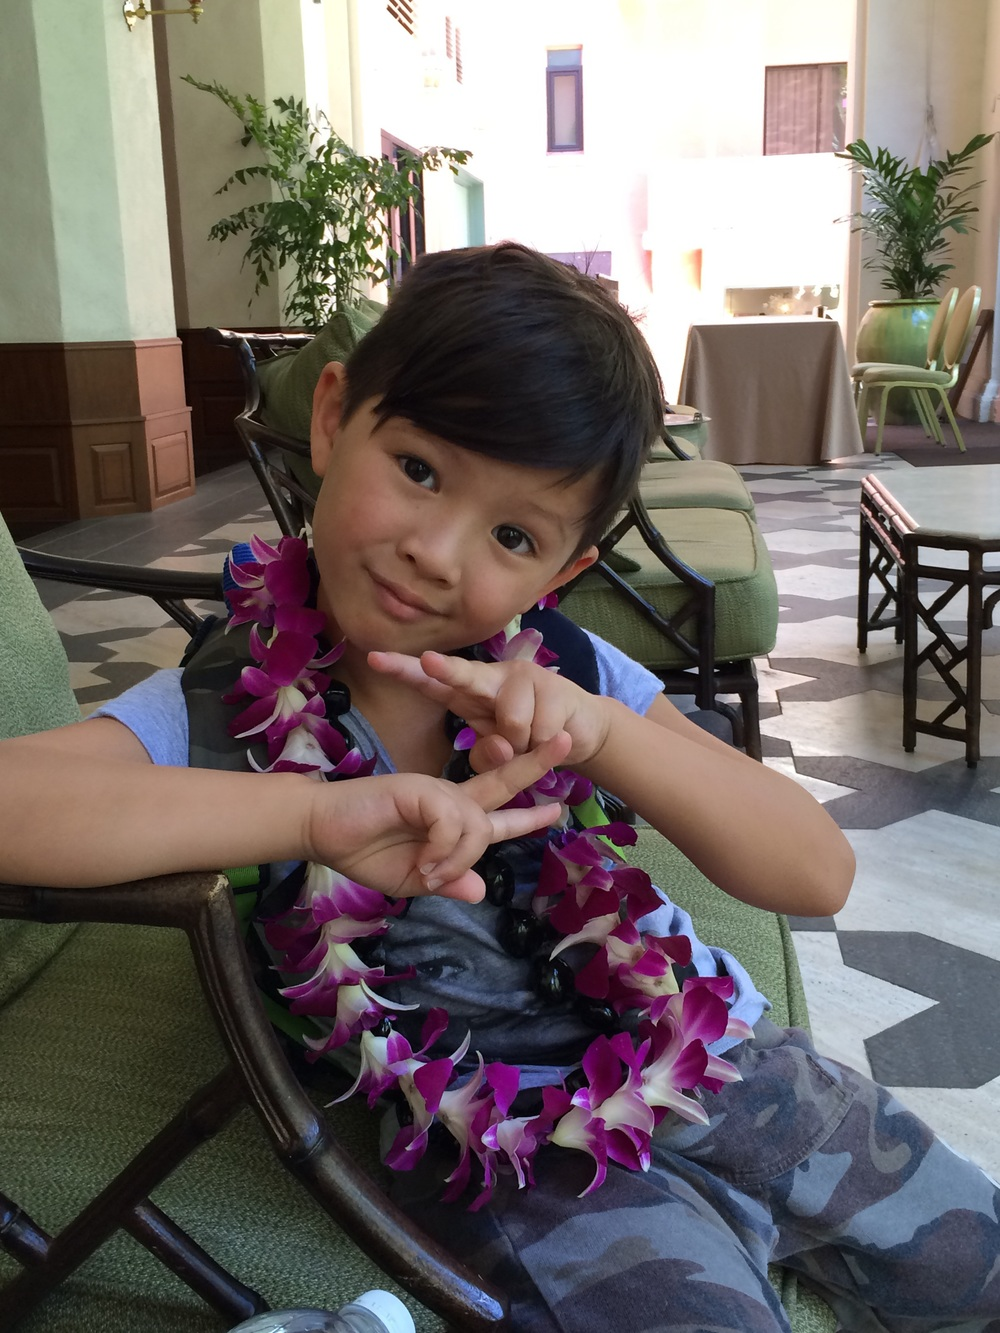 Hawaiian orchid lei in Hawaii but this really makes mesmile cause he's so goofy cute.